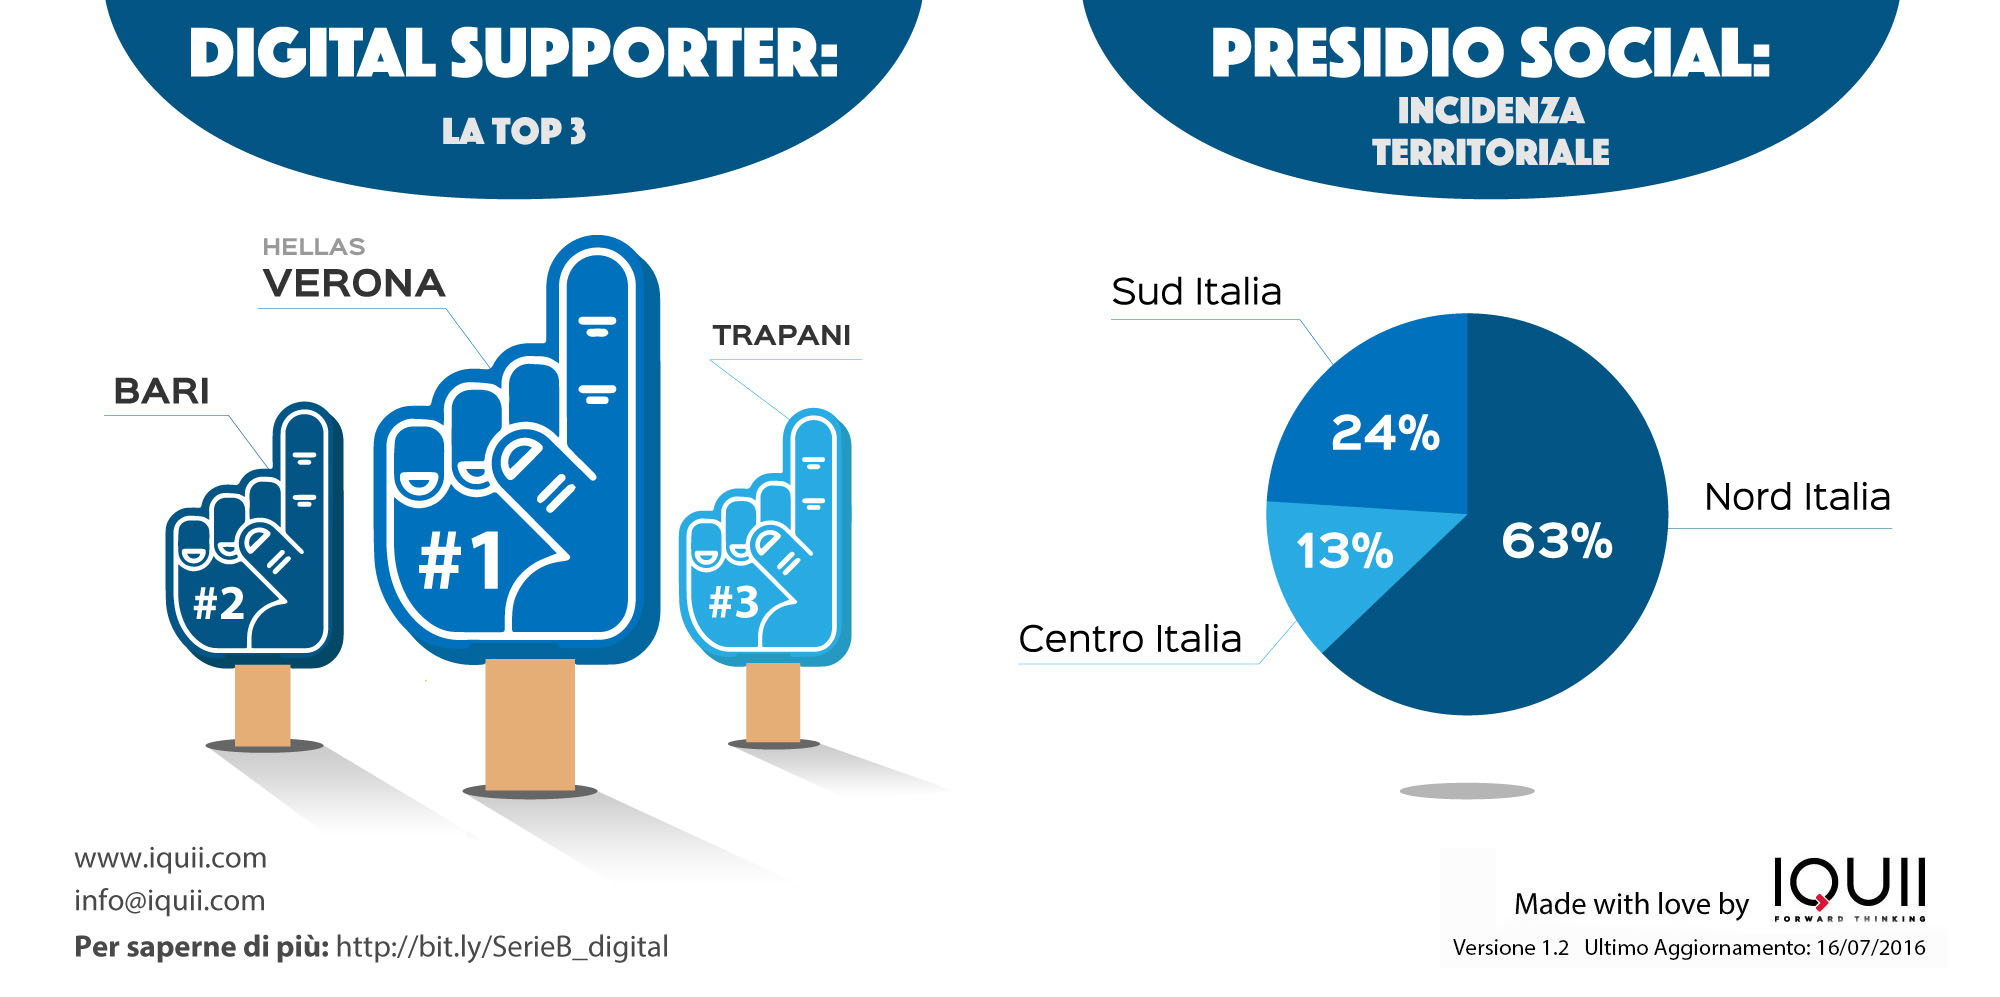 IQUII Serie B digital supporter